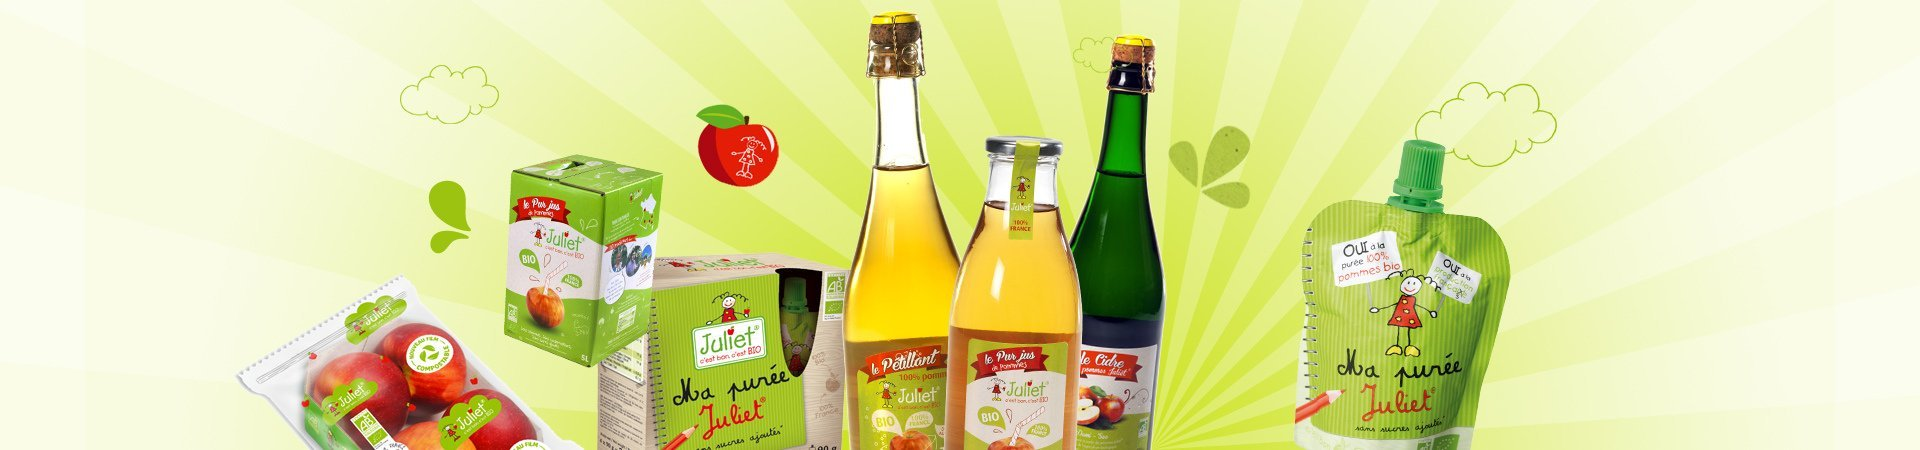 Juliet® apples product range: pure juice, ciders, applesauce, sparkling juice… It's good, it's organic!